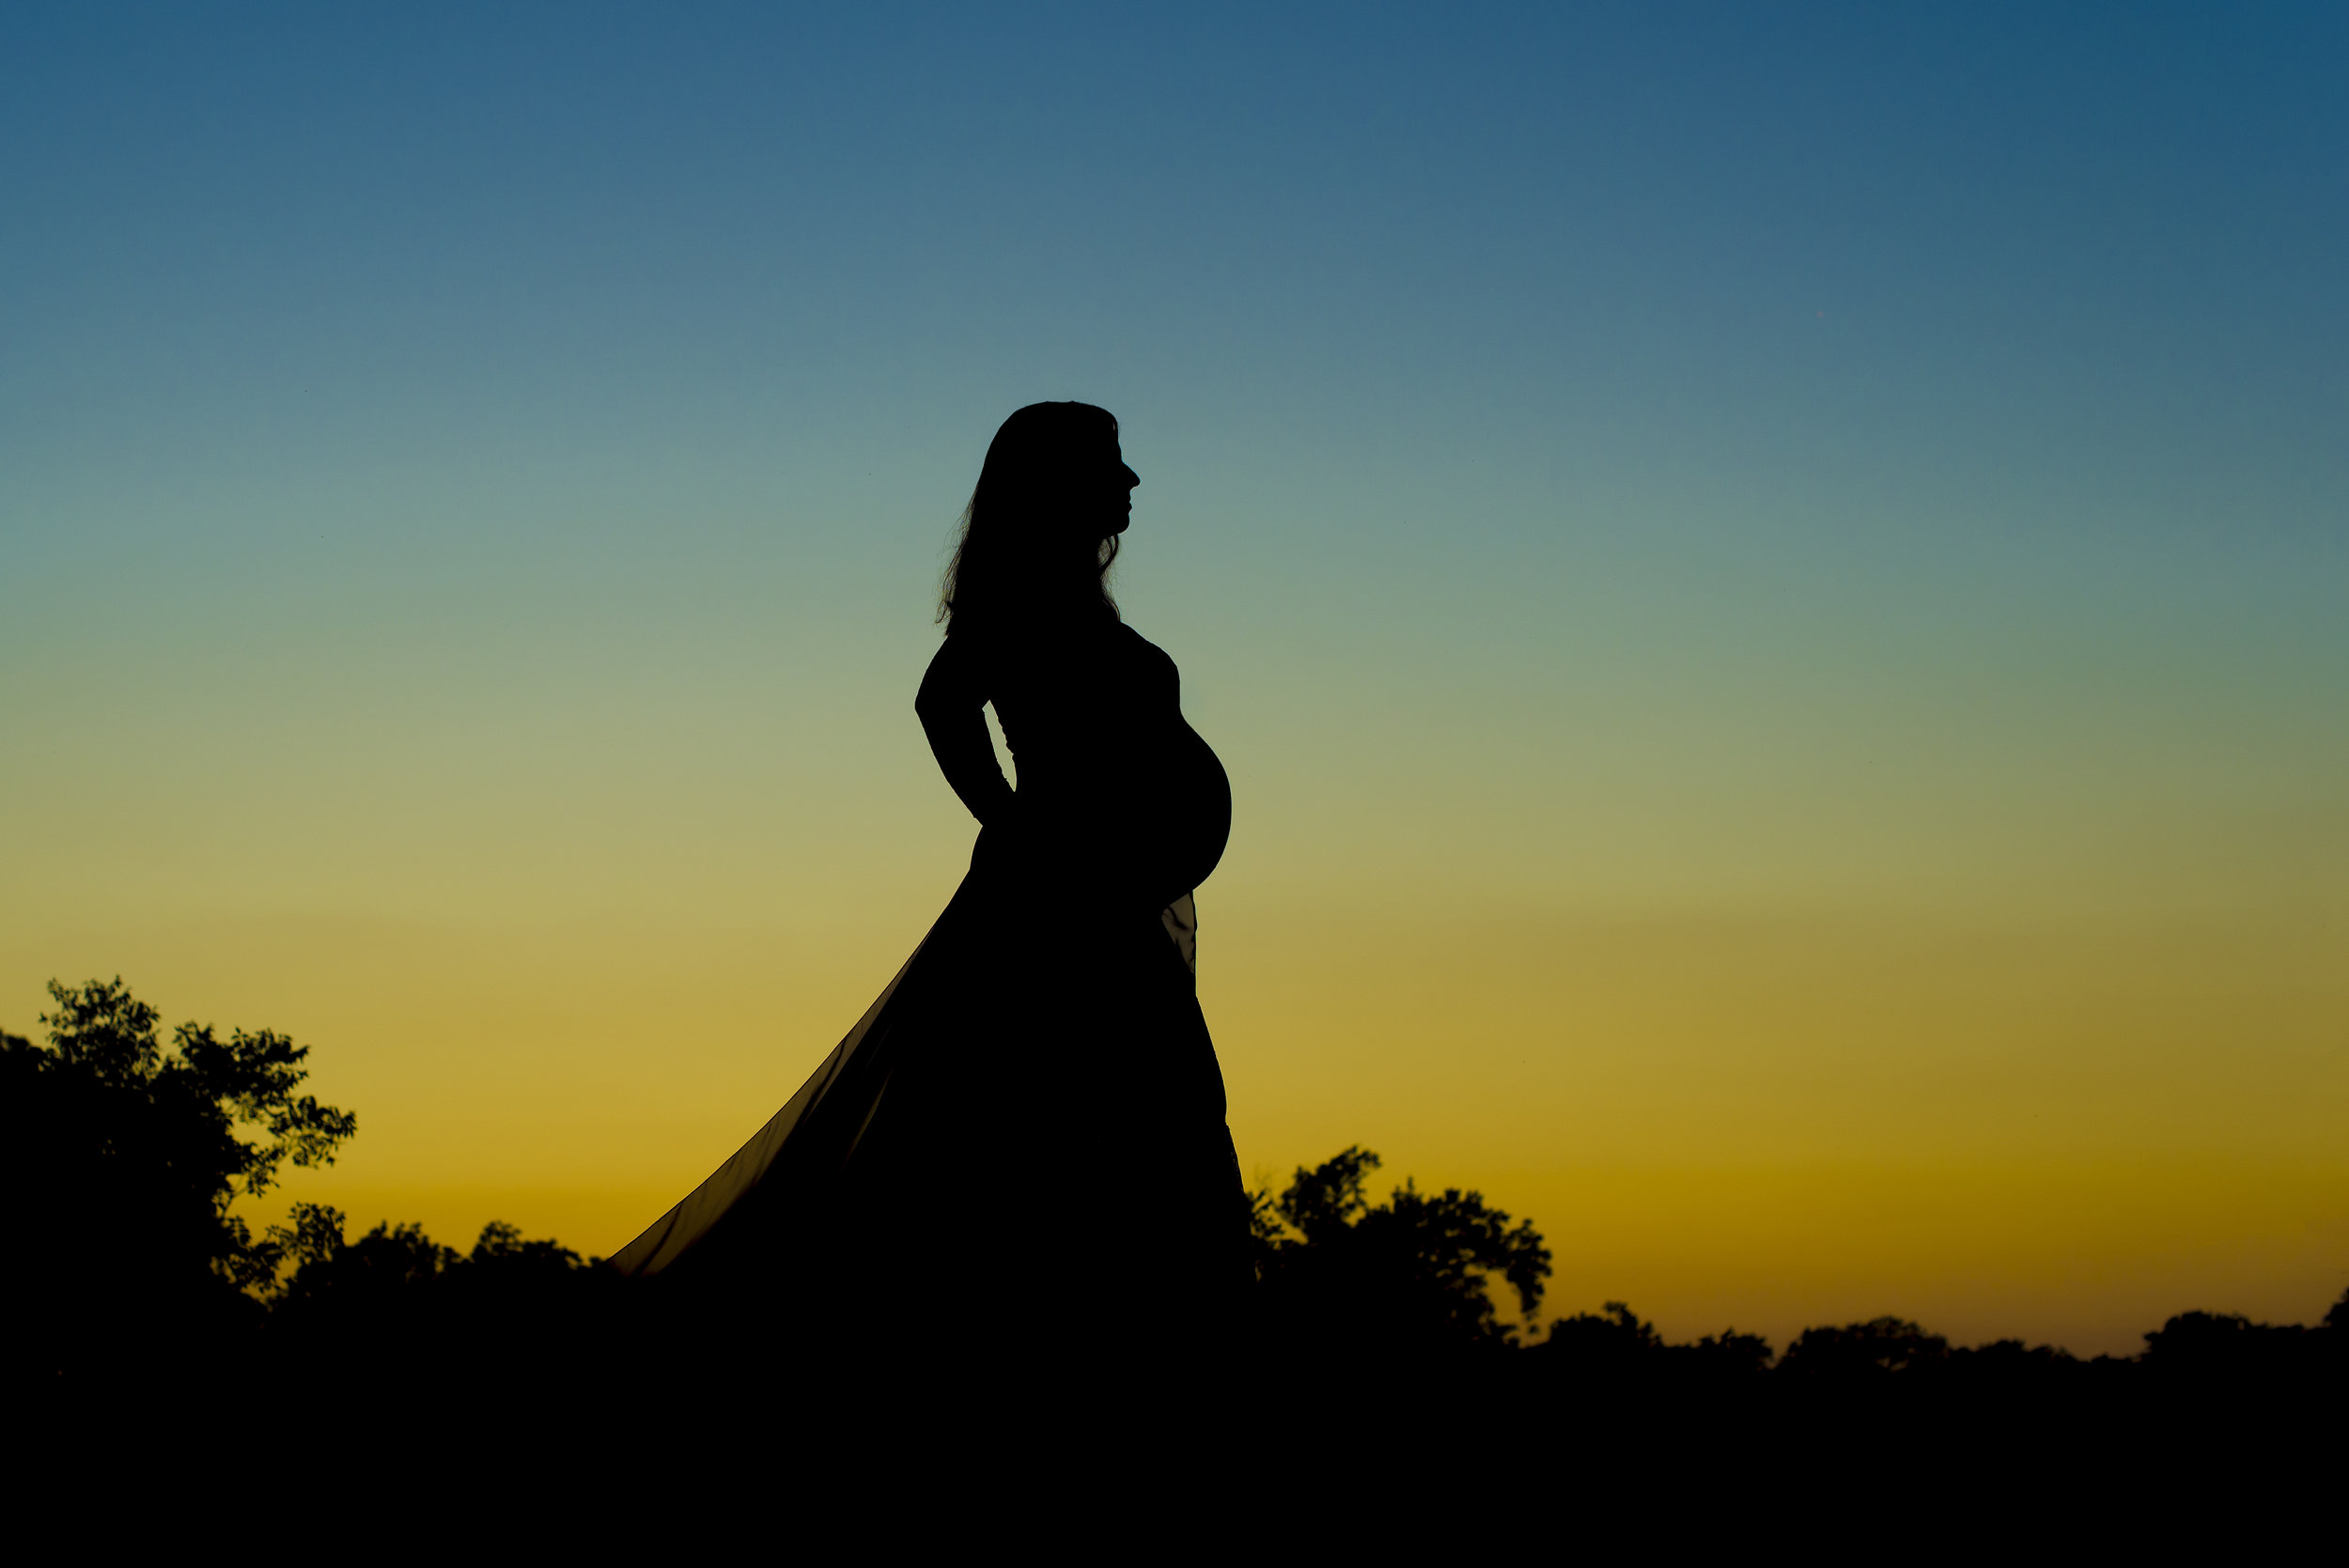 elegant, colorful pregnancy silhouette